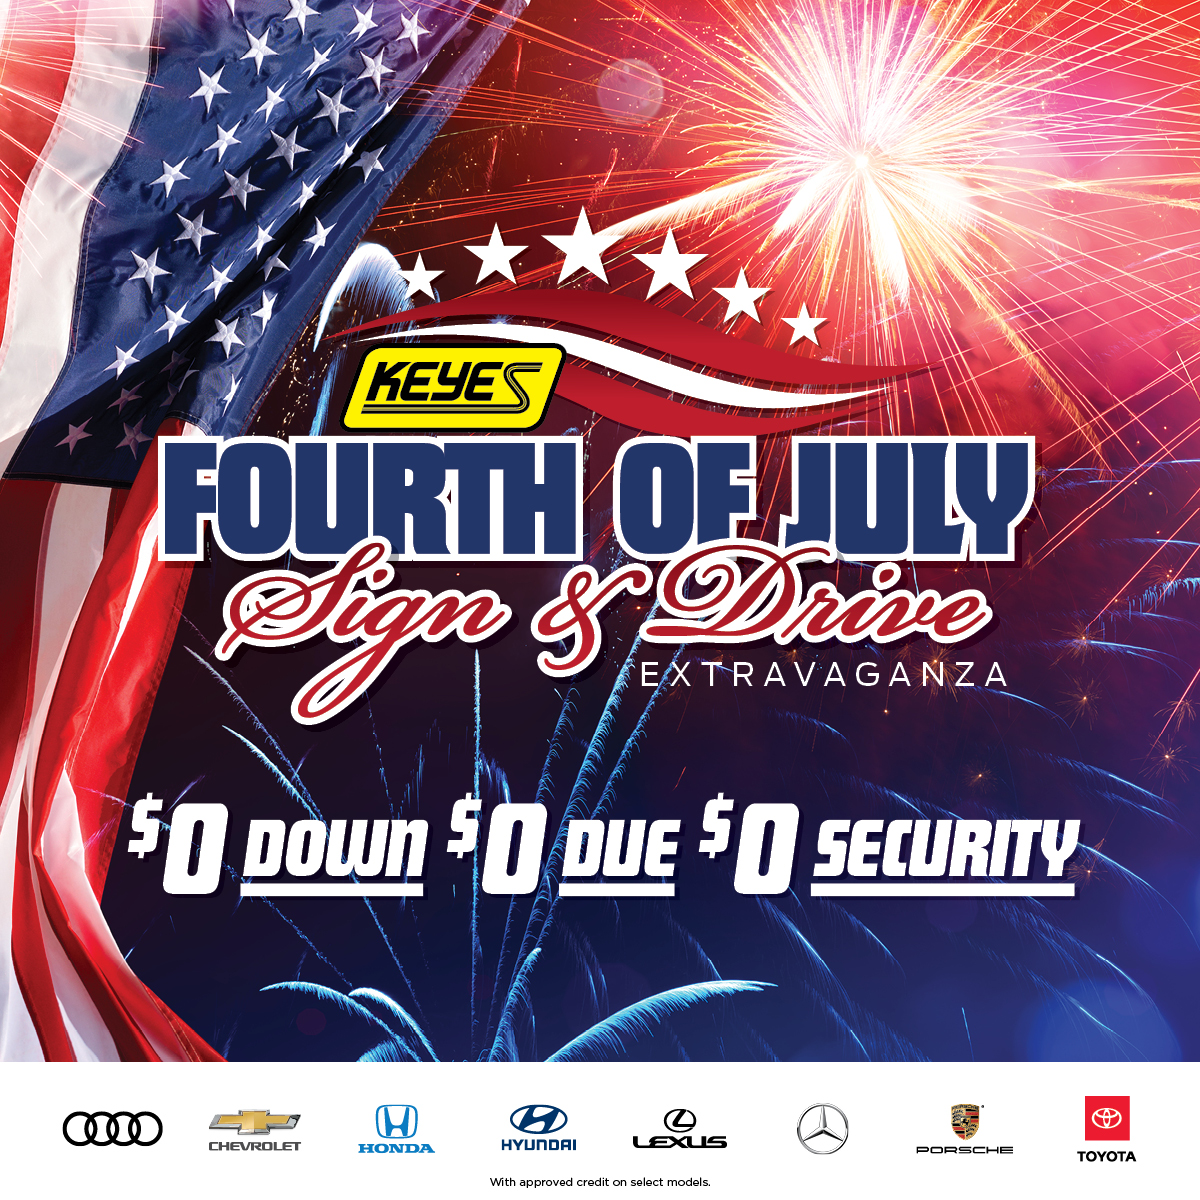 Ready for a new ride? Check out @keyescars 4th of July Sign & Drive Extravaganza. Keyes is Everywhere with 12 Locations! $0 DOWN! $0 DUE! $0 SECURITY! Visit https://t.co/TSd0eSyeRY #ad https://t.co/rKoQvqOvUN